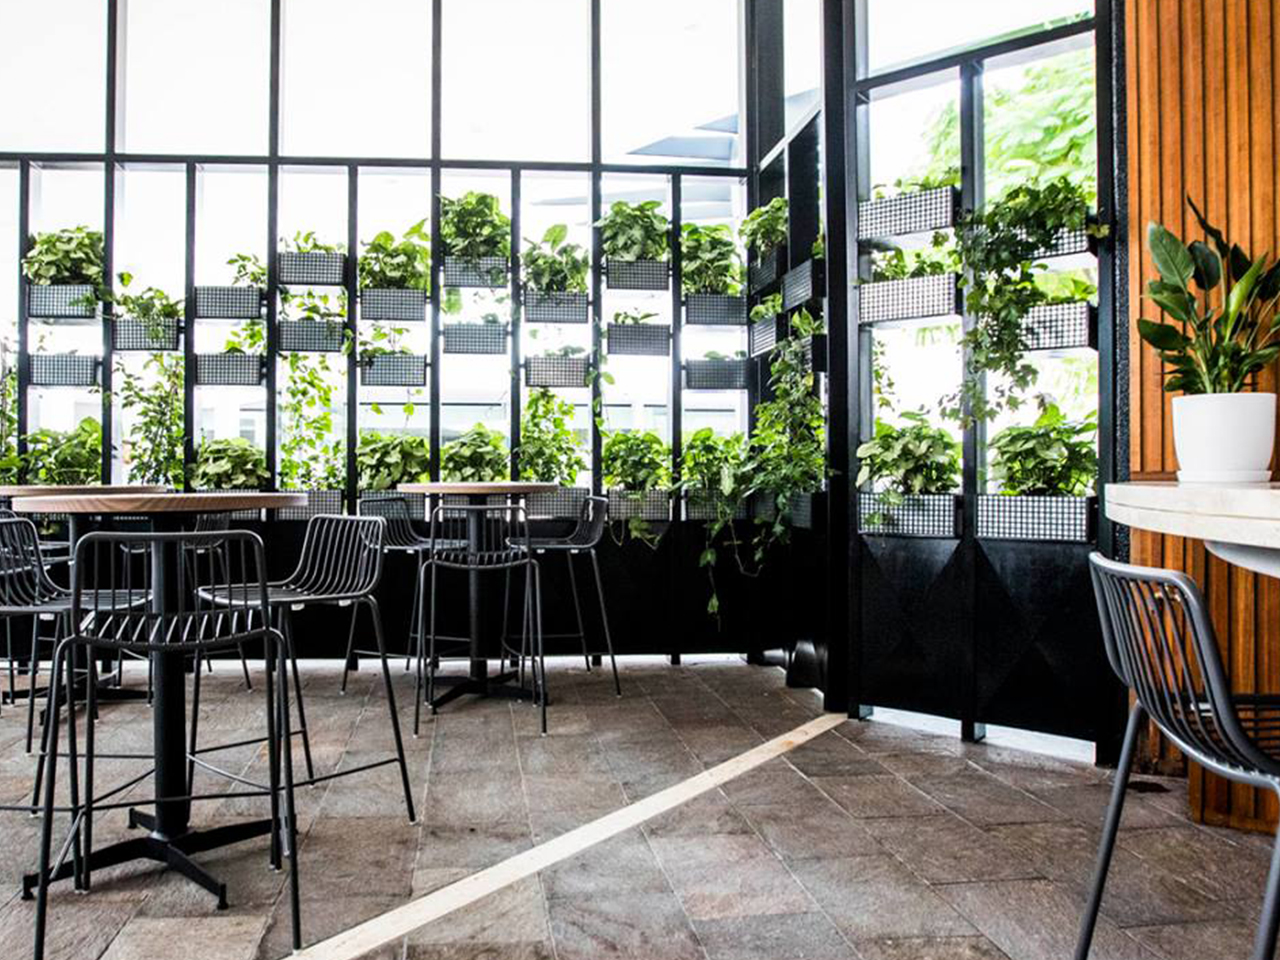 High Chairs And Tables Inside The Unique Venue With Indoor Plants